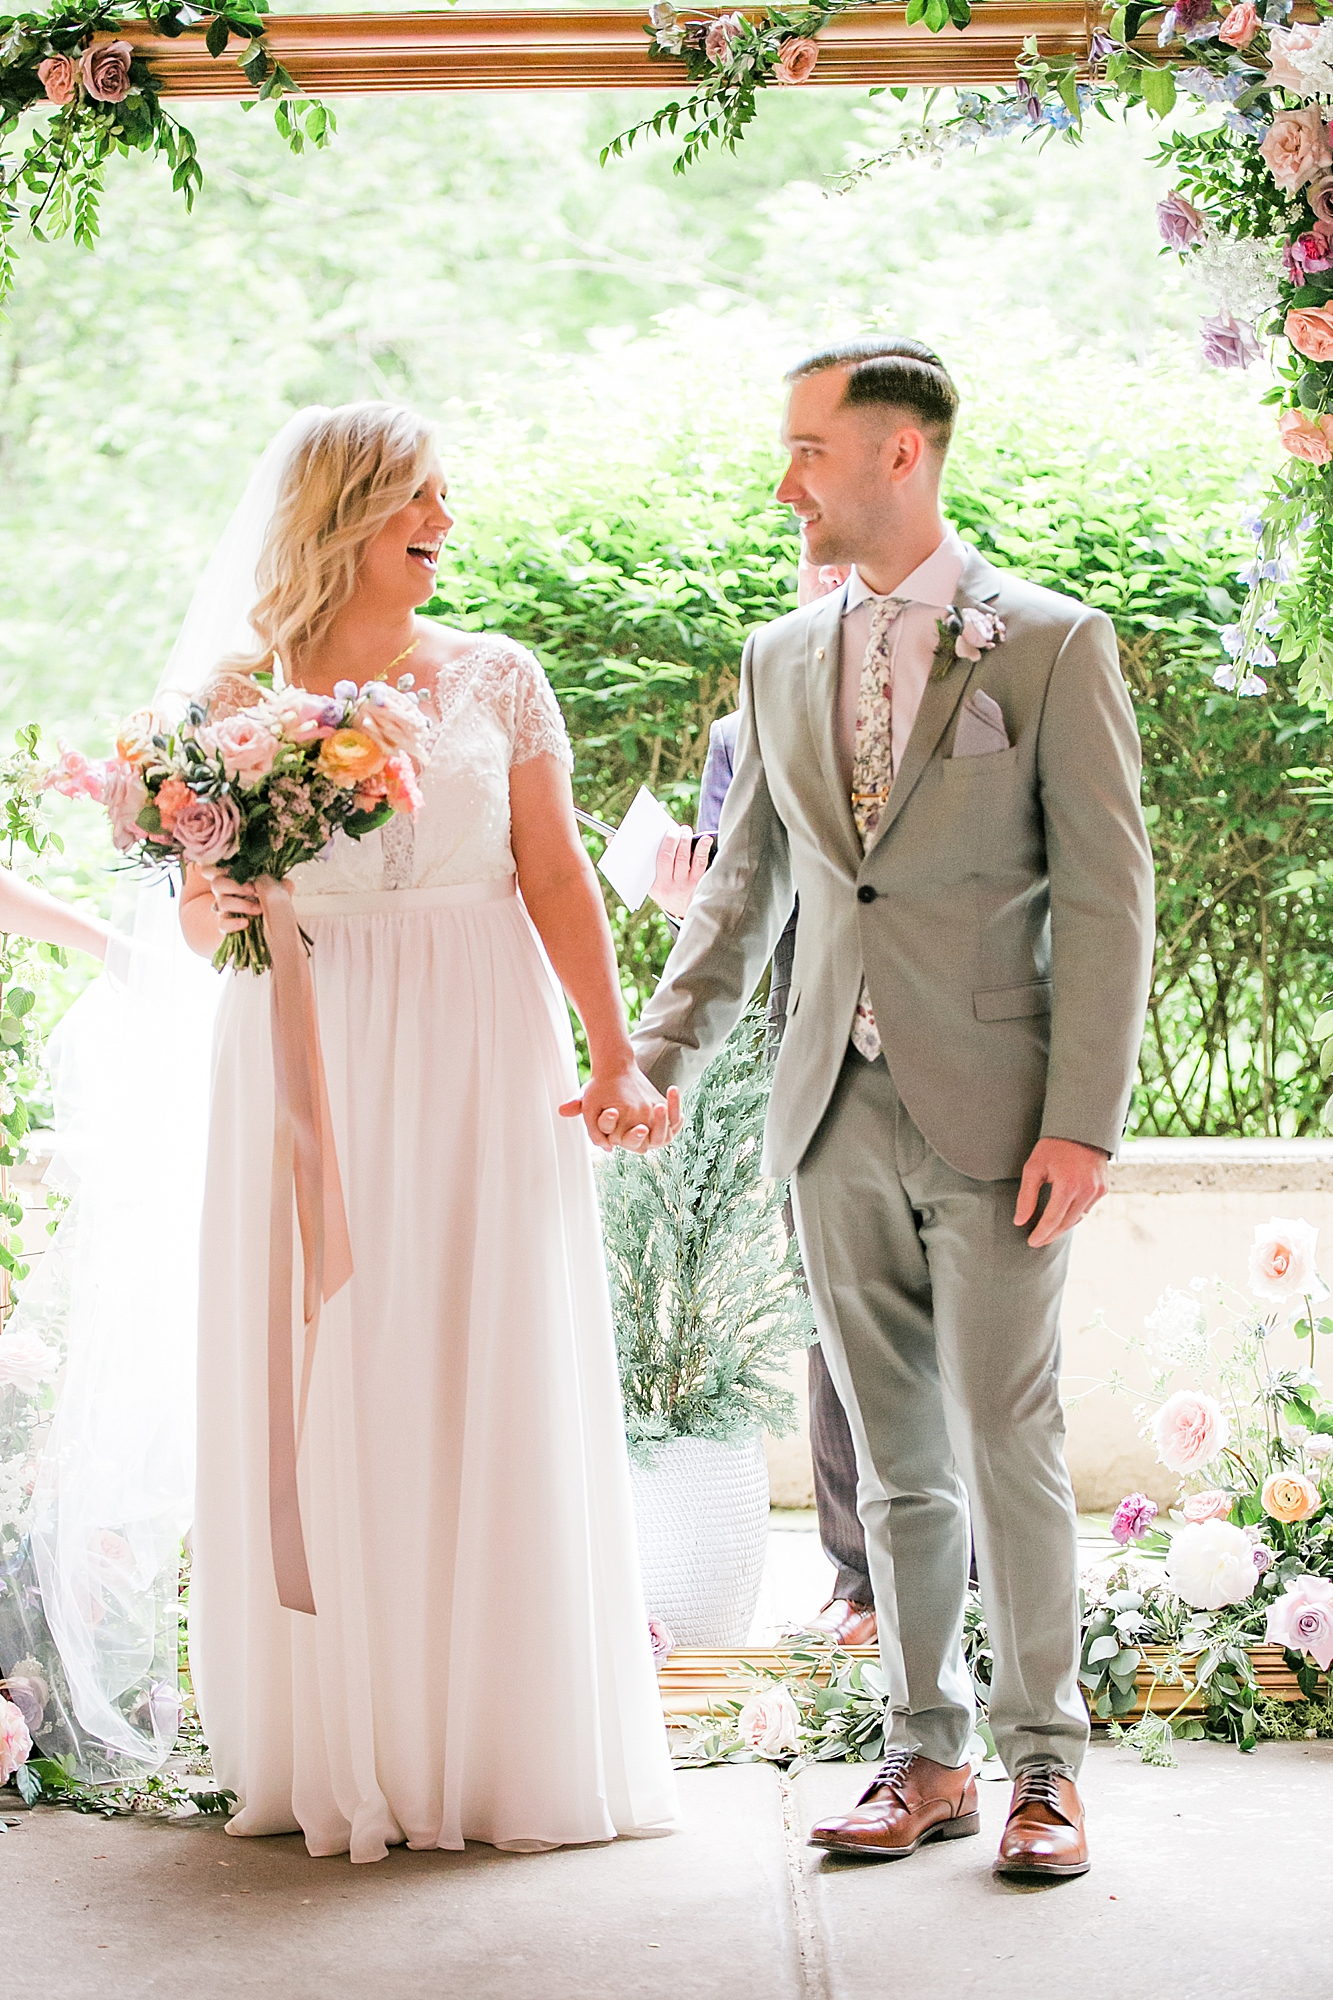 Intimate and Sweet Estate Wedding Photography by Magdalena Studios 0032